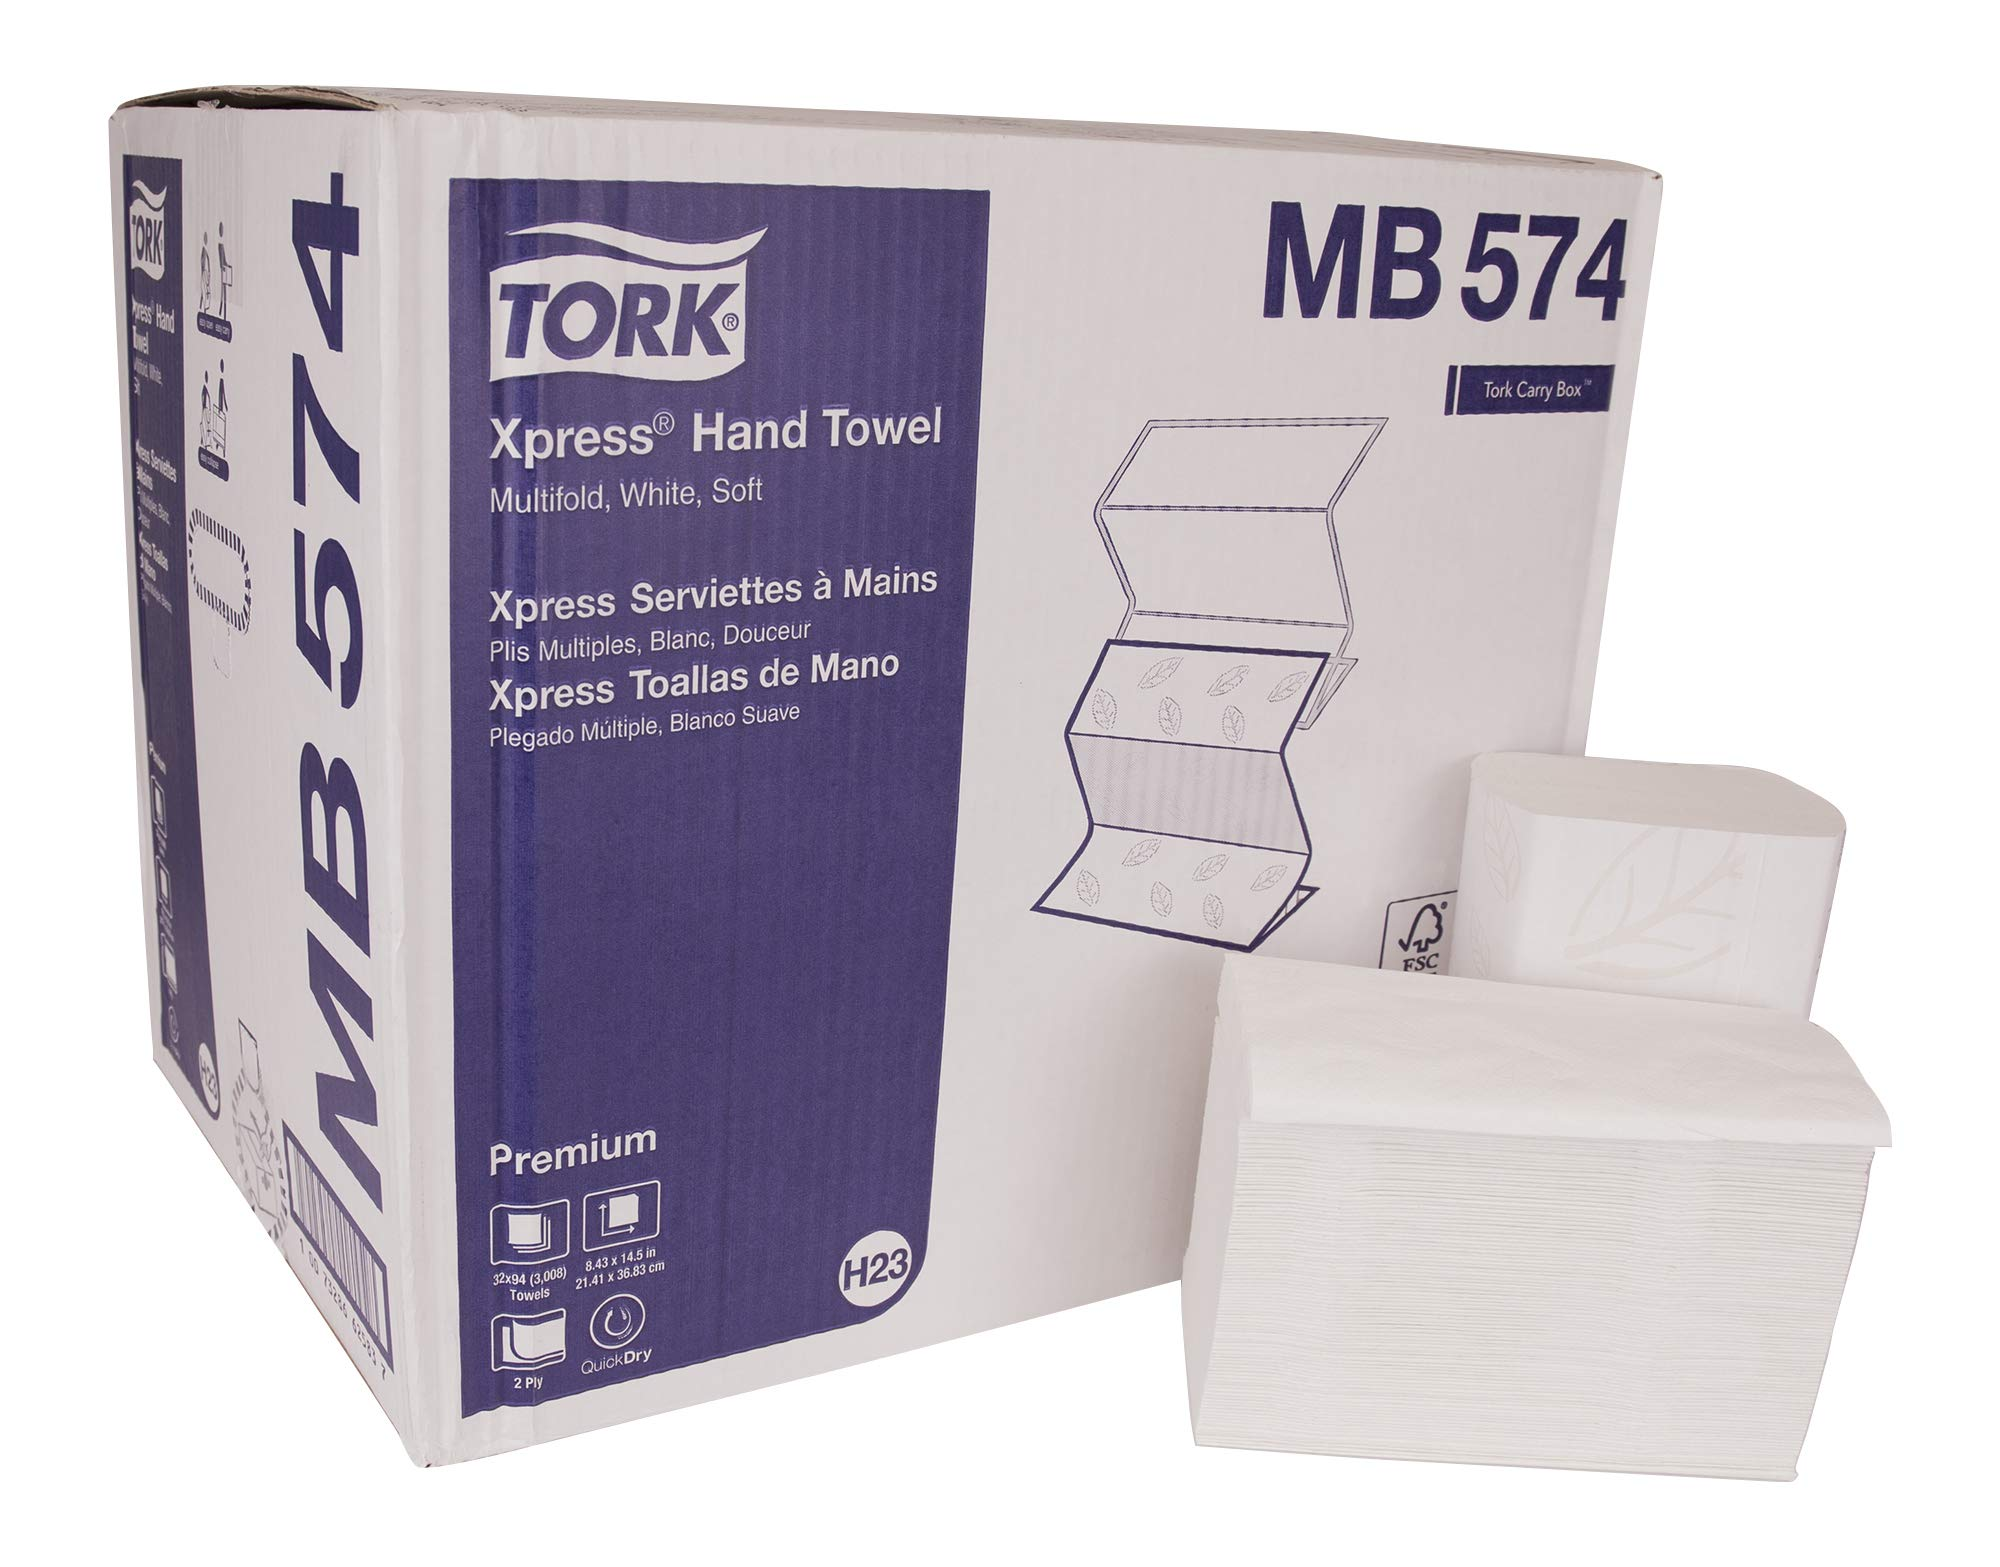 Tork Premium MB574 Soft Xpress Multifold Paper Hand Towel, 4-Panel, 2-Ply, 8.4'' Width x 14.5'' Length, White (Case of 32 Packs, 94 per Pack, 3,008 Towels) by Tork (Image #1)